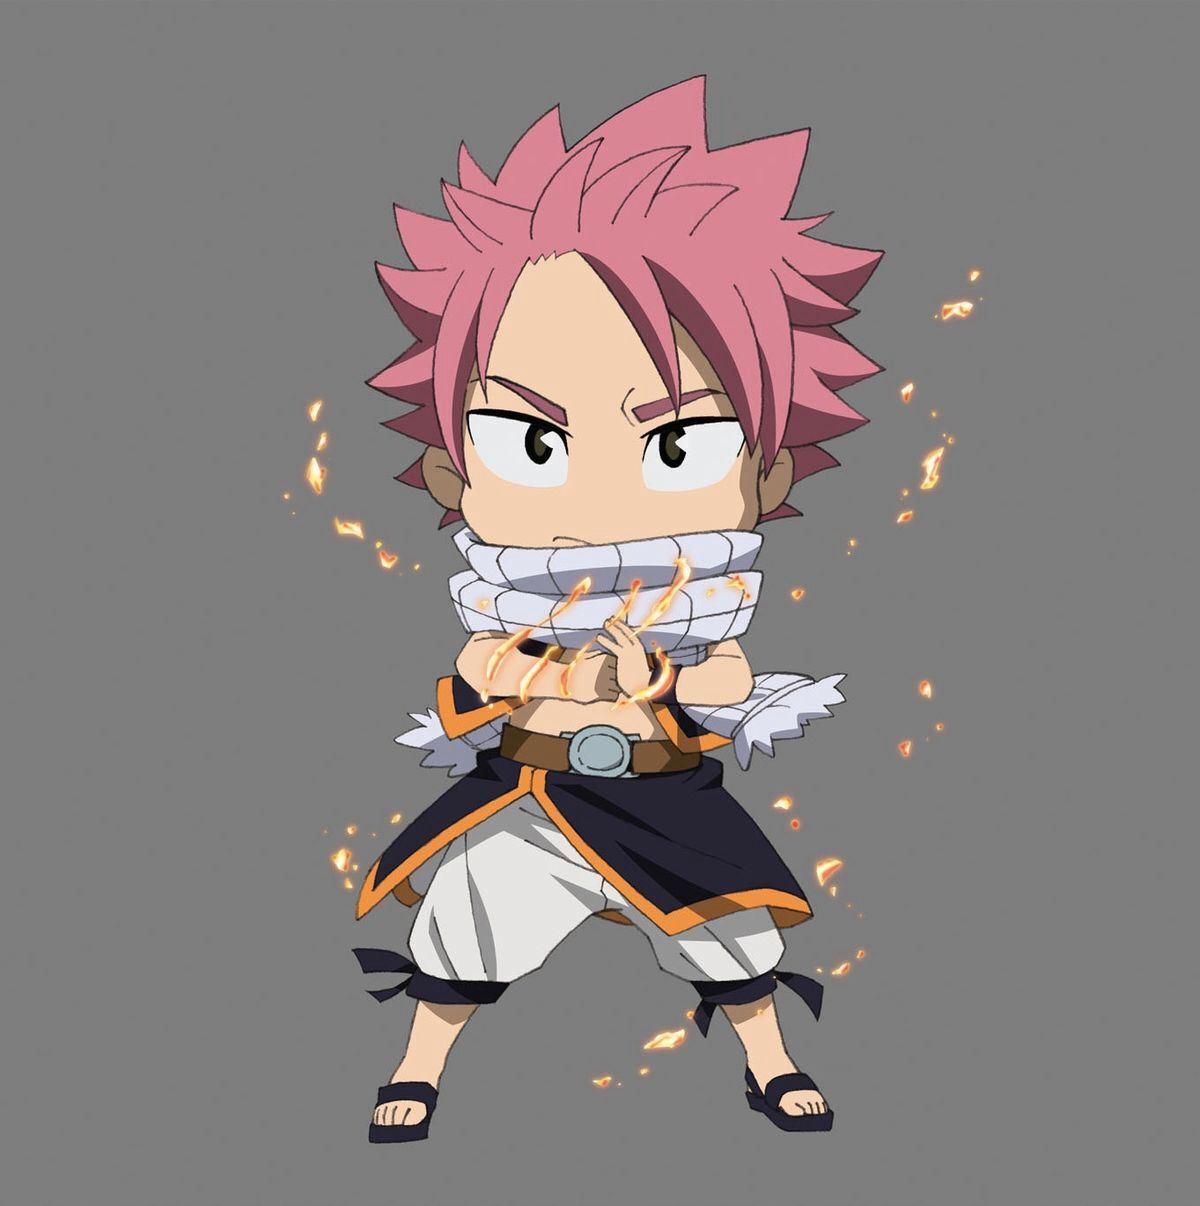 Fairy Tail | Fairy tail art, Fairy tail pictures, Fairy tail